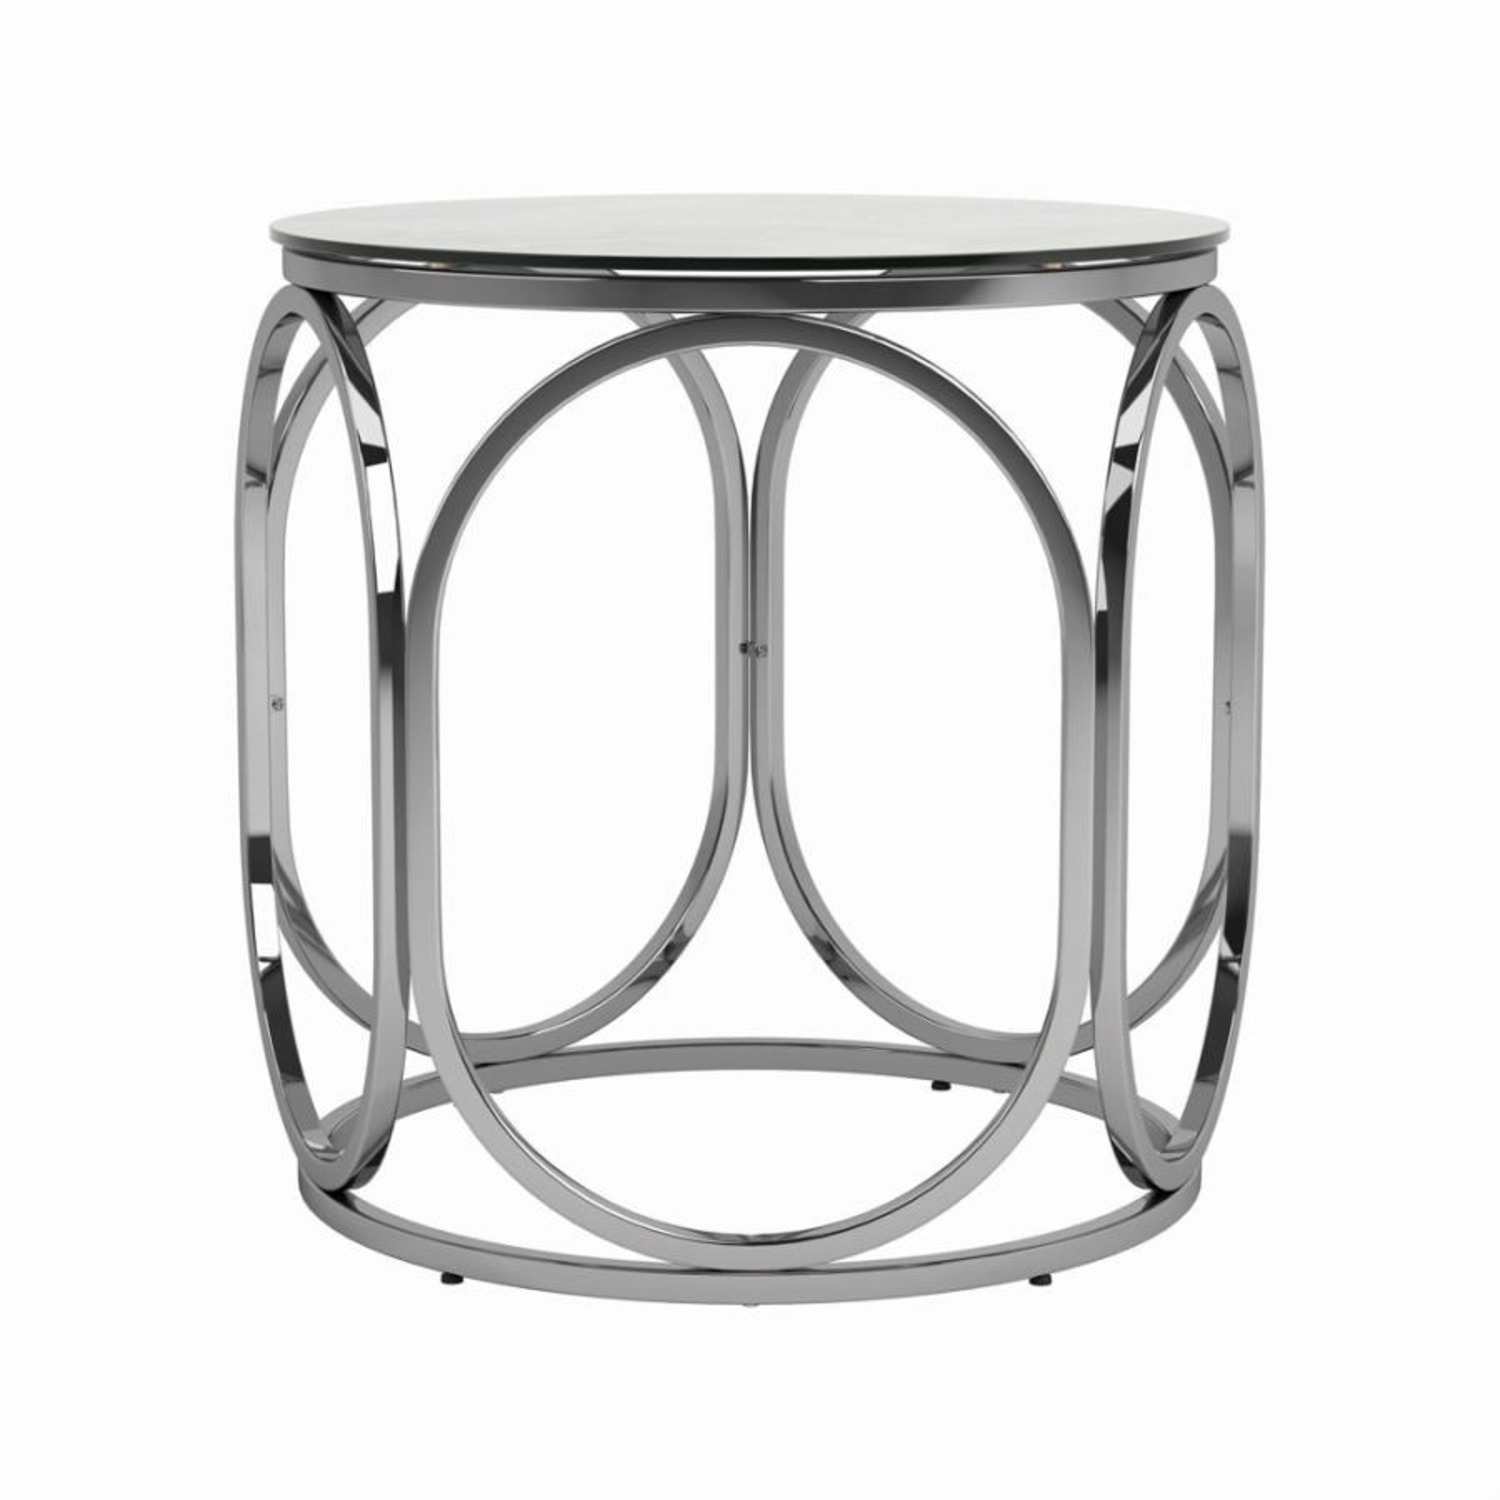 Circular Shapes End Table In Chrome Metal Finish - image-1